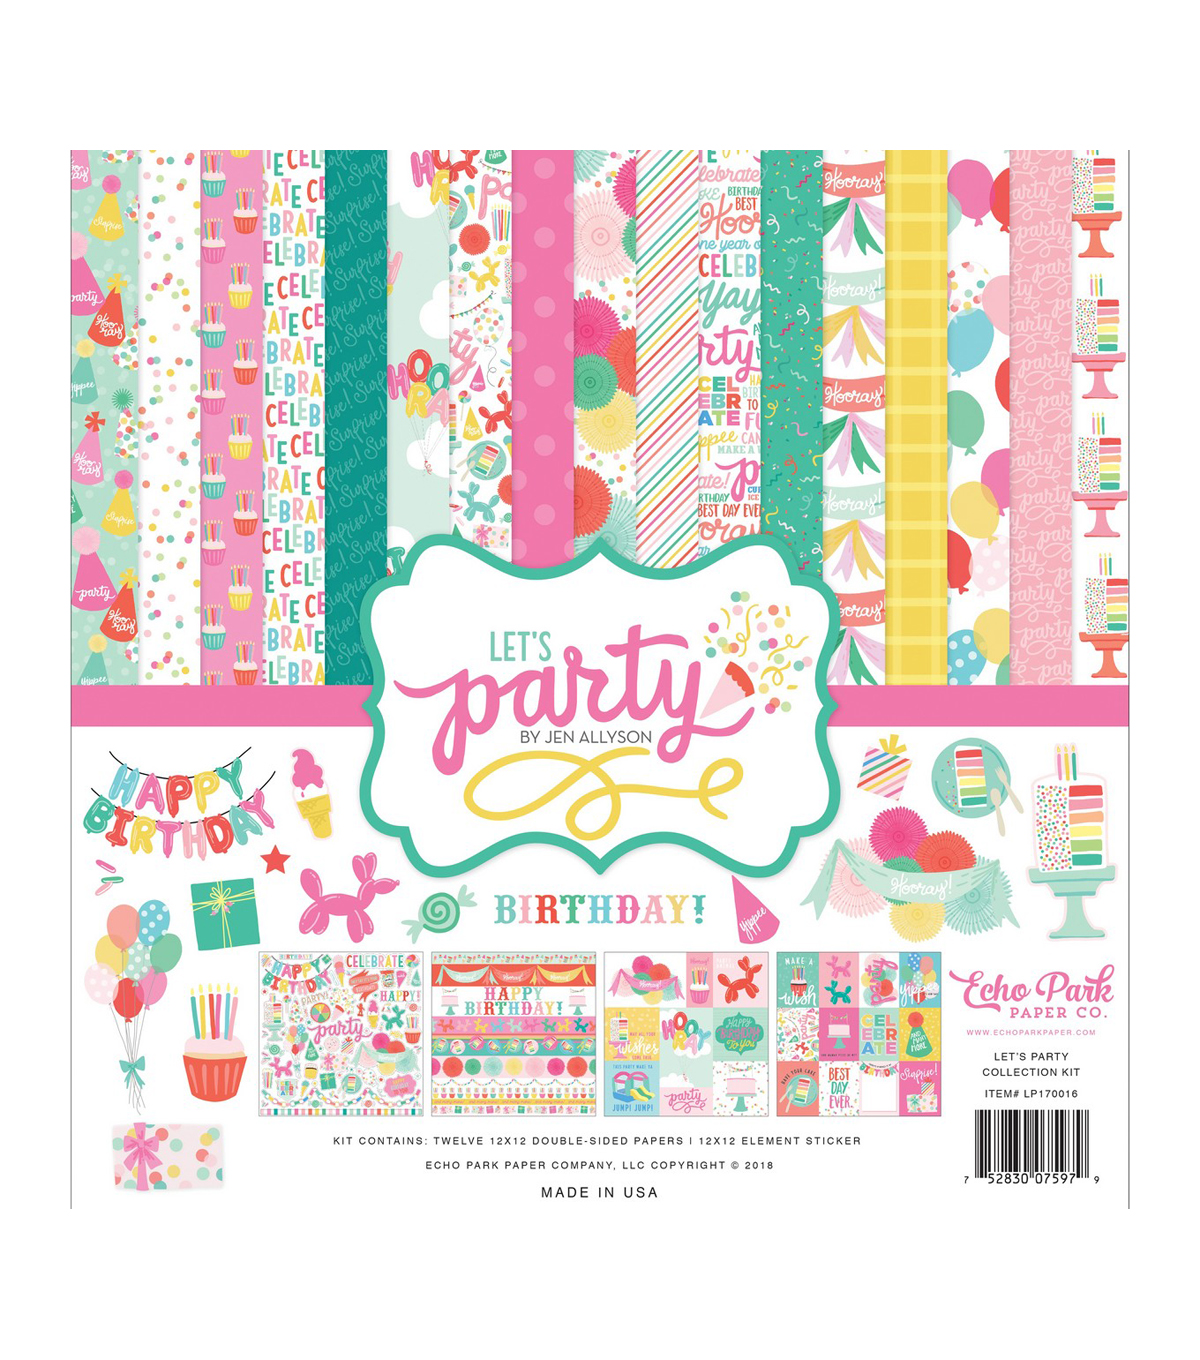 Echo Park Paper Co. Let\u0027s Party Collection Kit